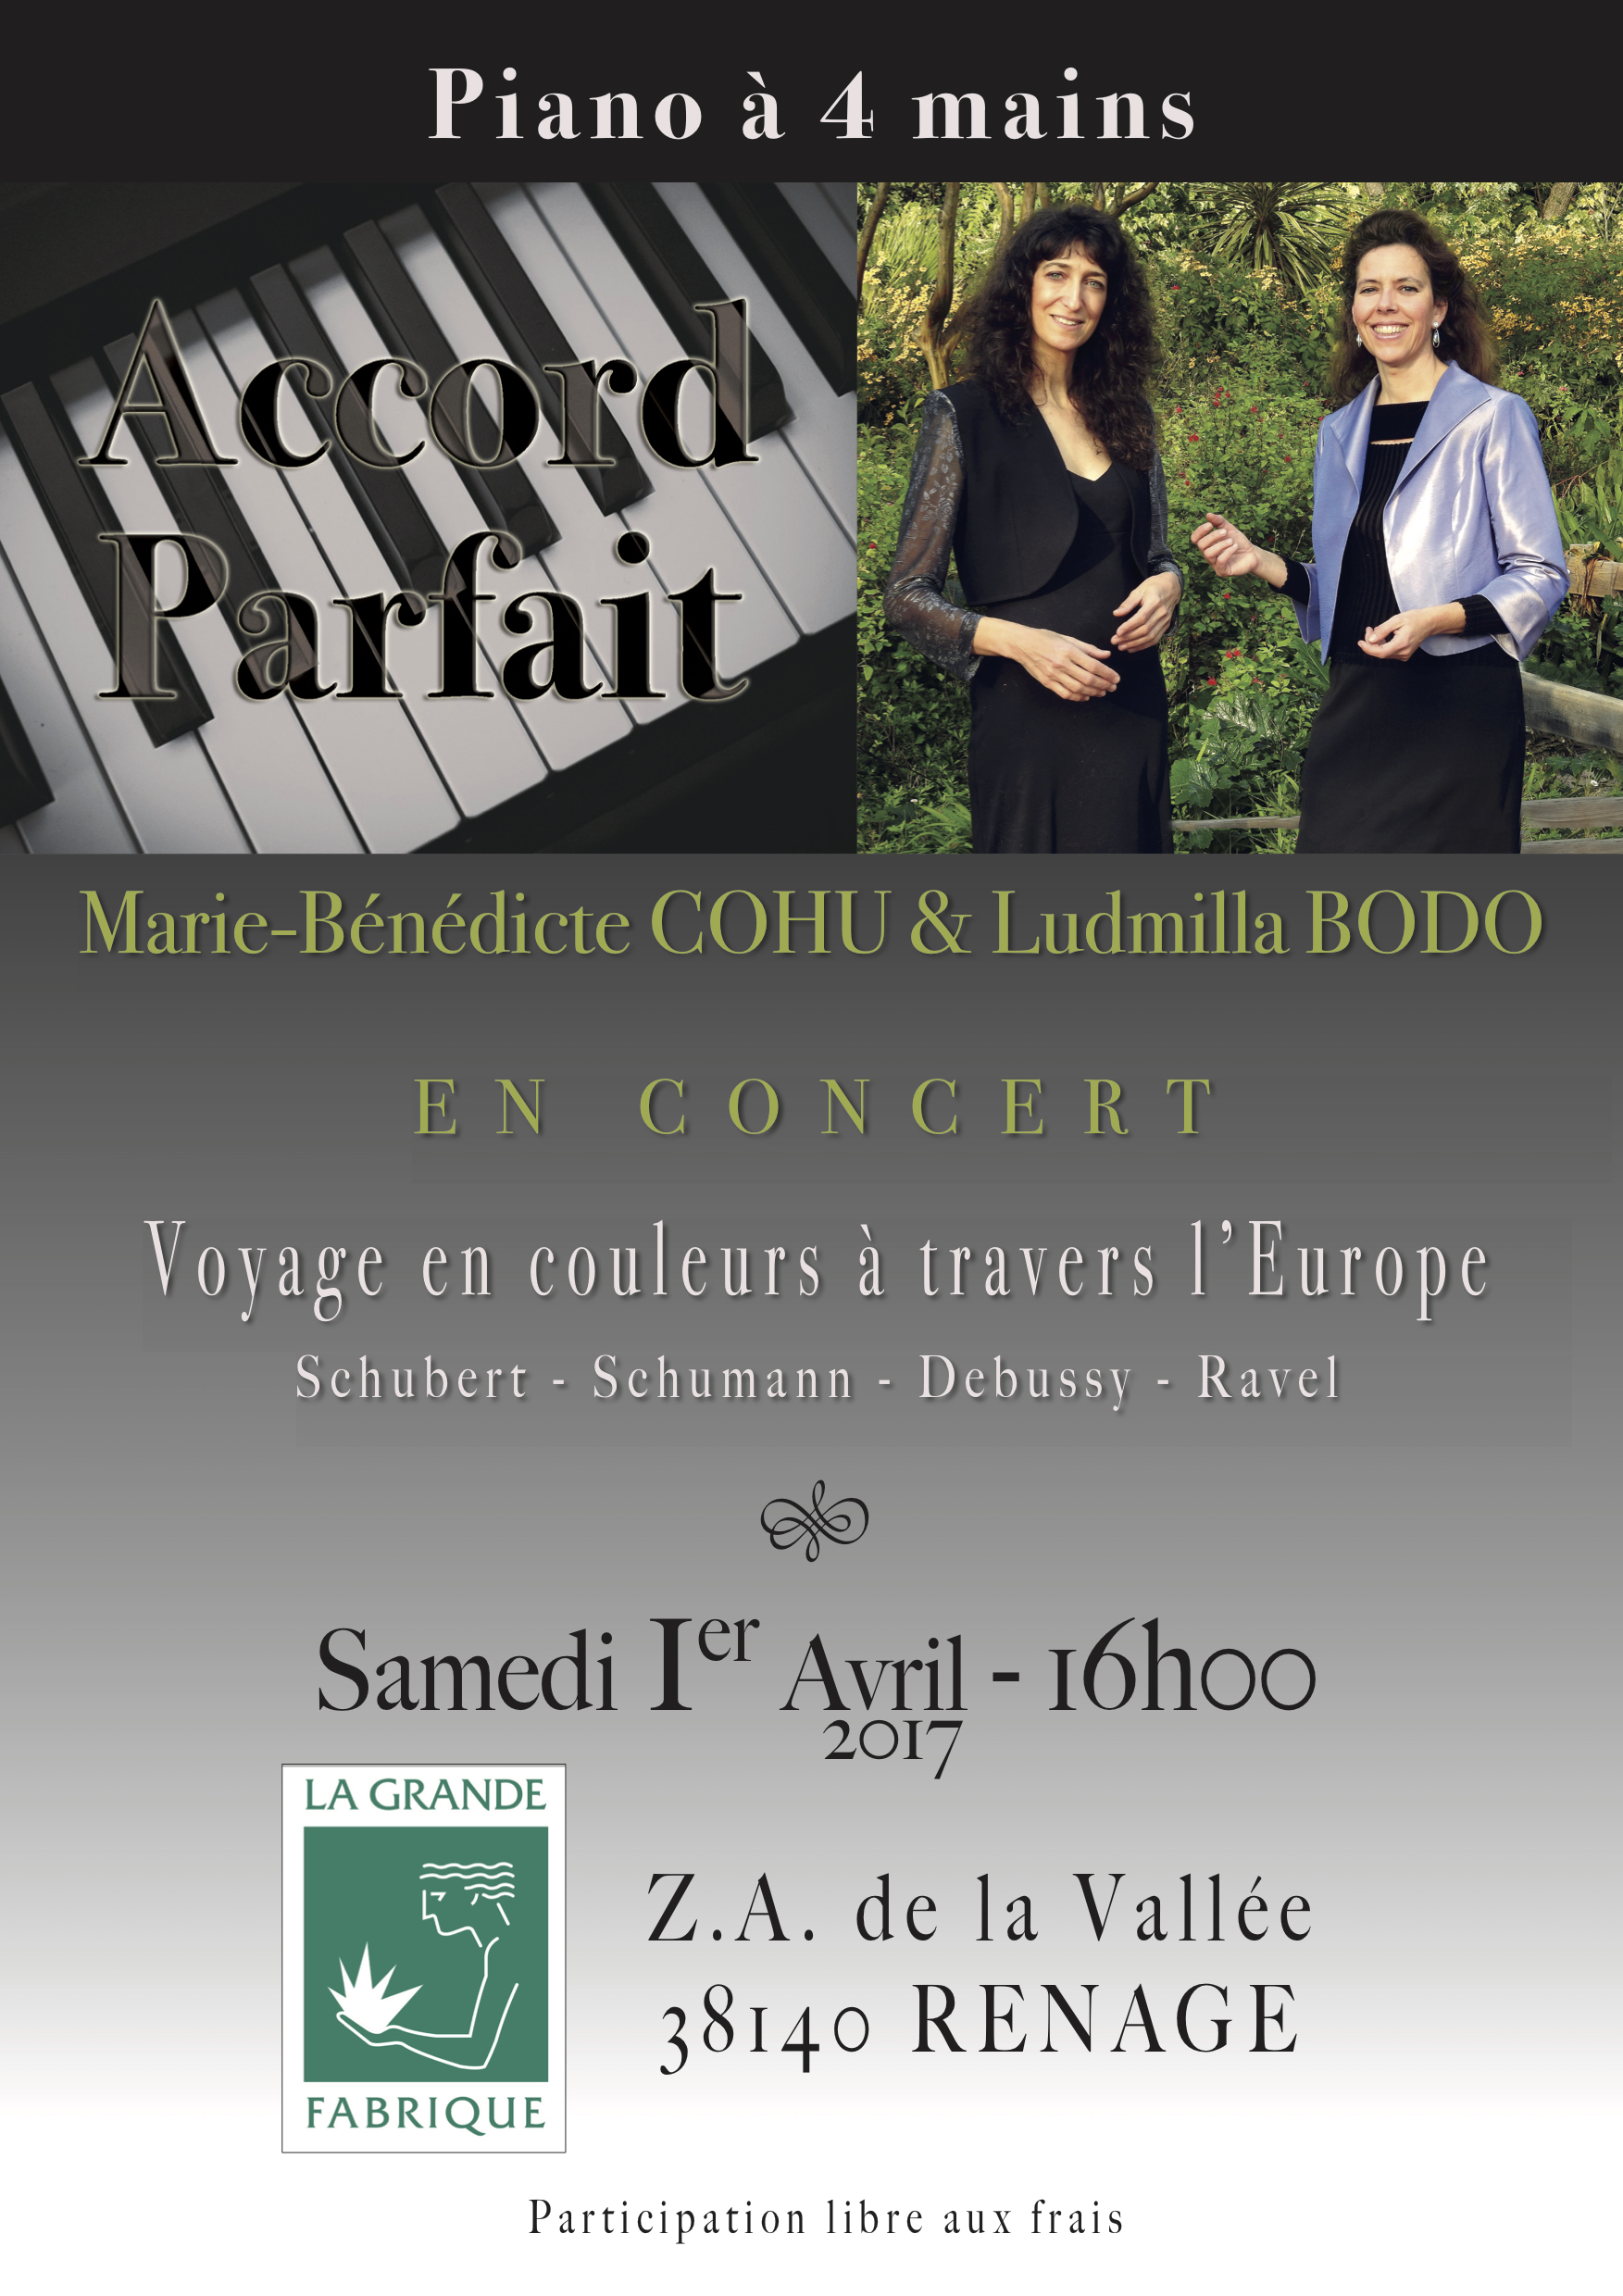 Concert 4 mains Duo Accord Parfait